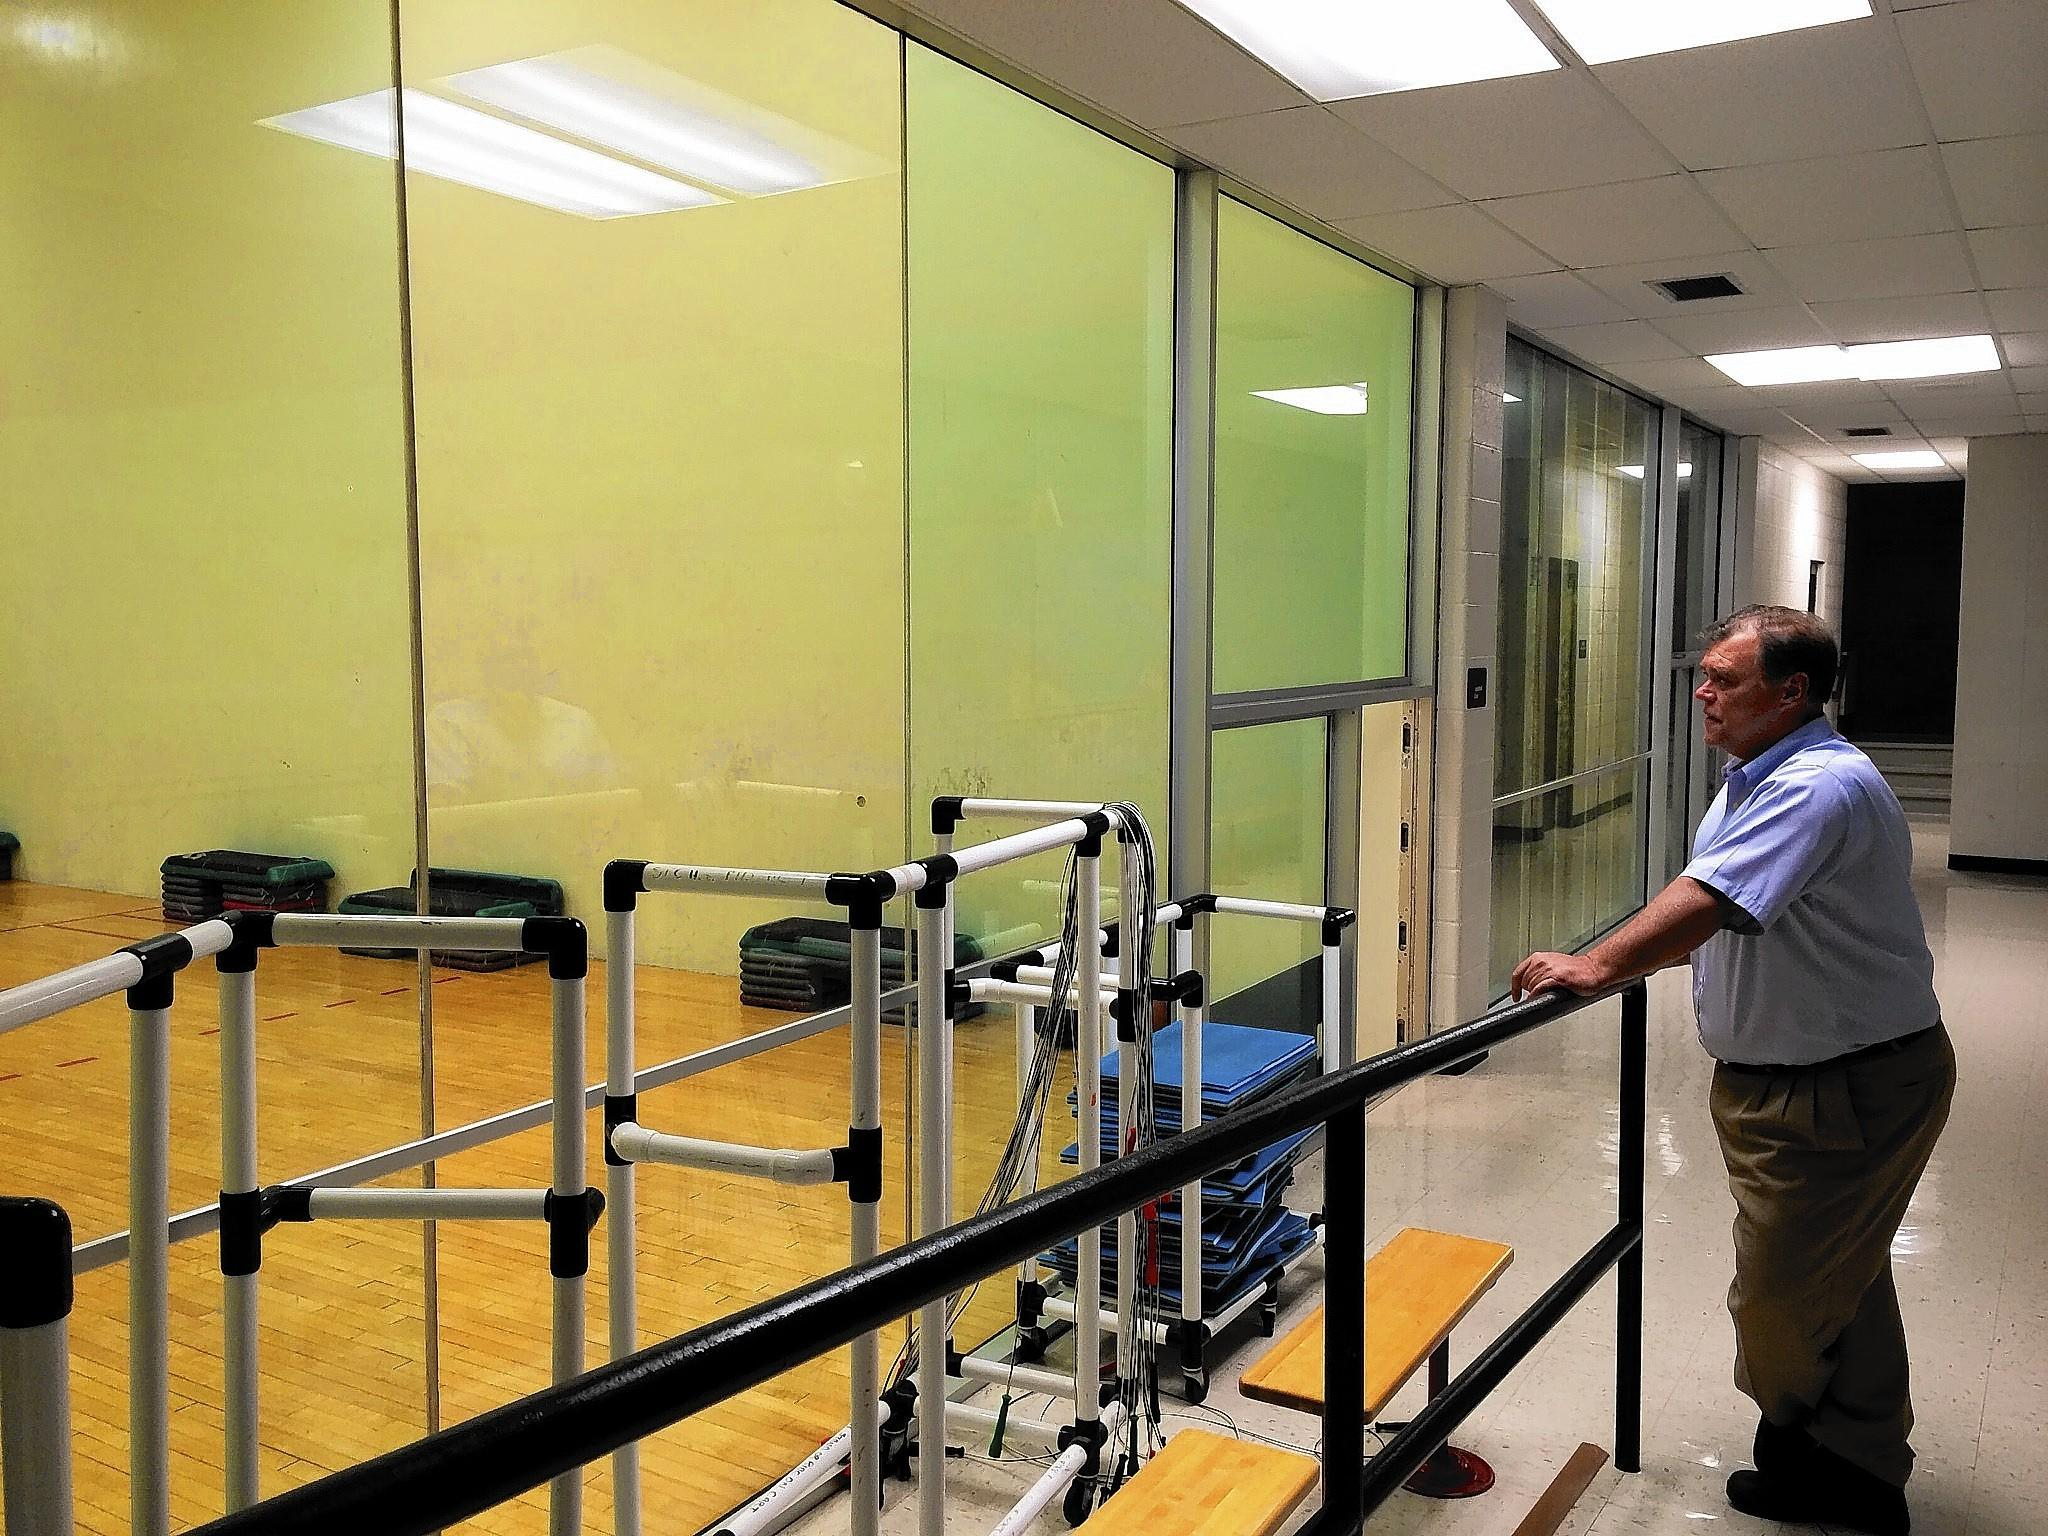 John Baird, assistant superintendent of operations for District 303, looks out at one of three racquetball courts where mold was discovered. The court above is occassionally used as a stretching area, but the other two remain empty.